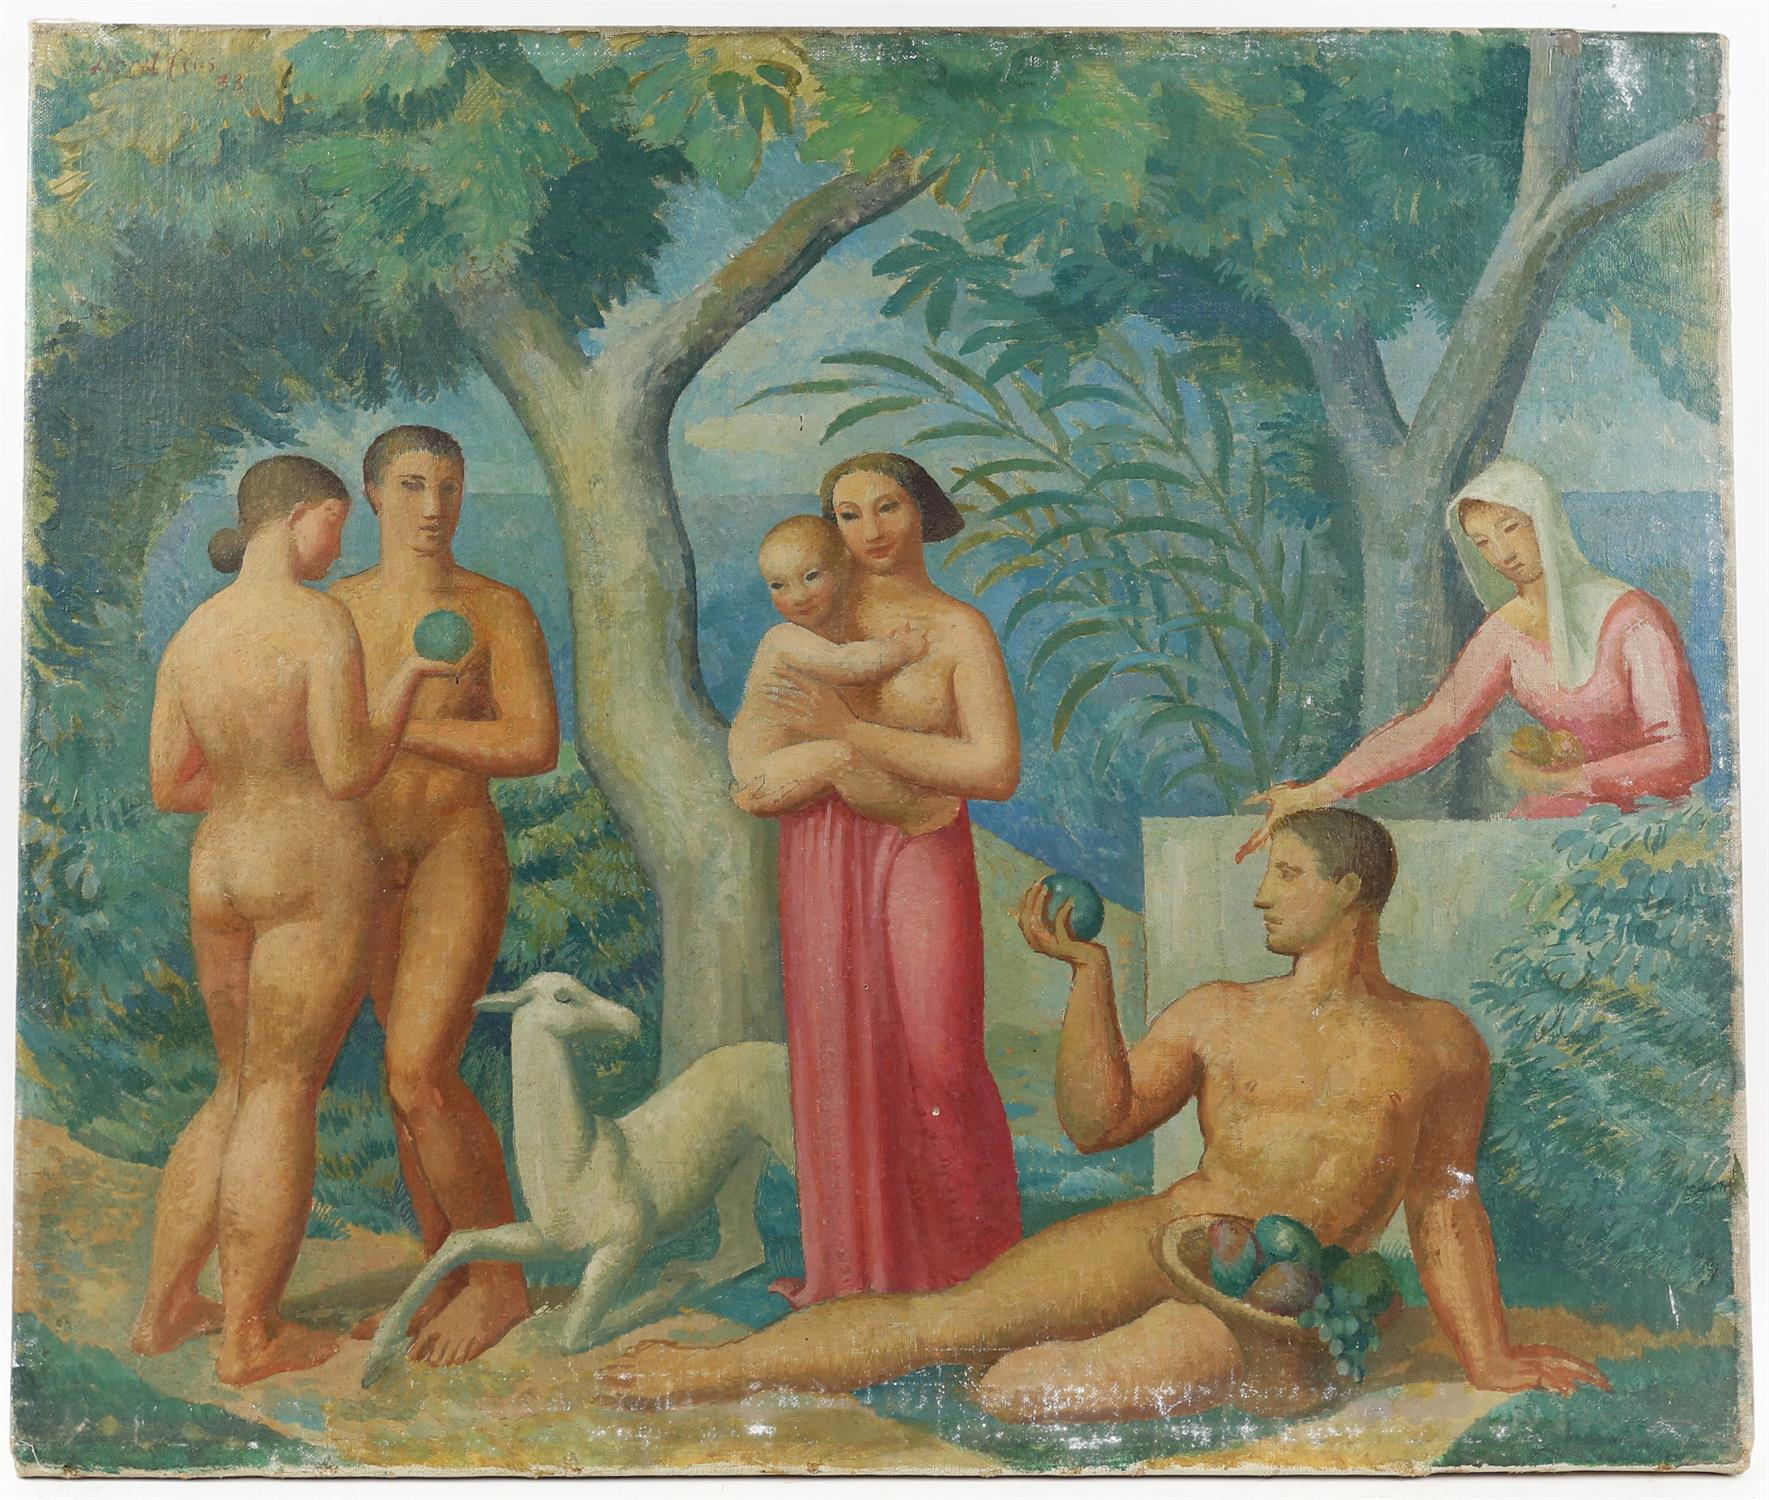 § Lionel Ellis (1903-1988). Classical Figures in a Tropical Garden. Oil on canvas. Unsigned.